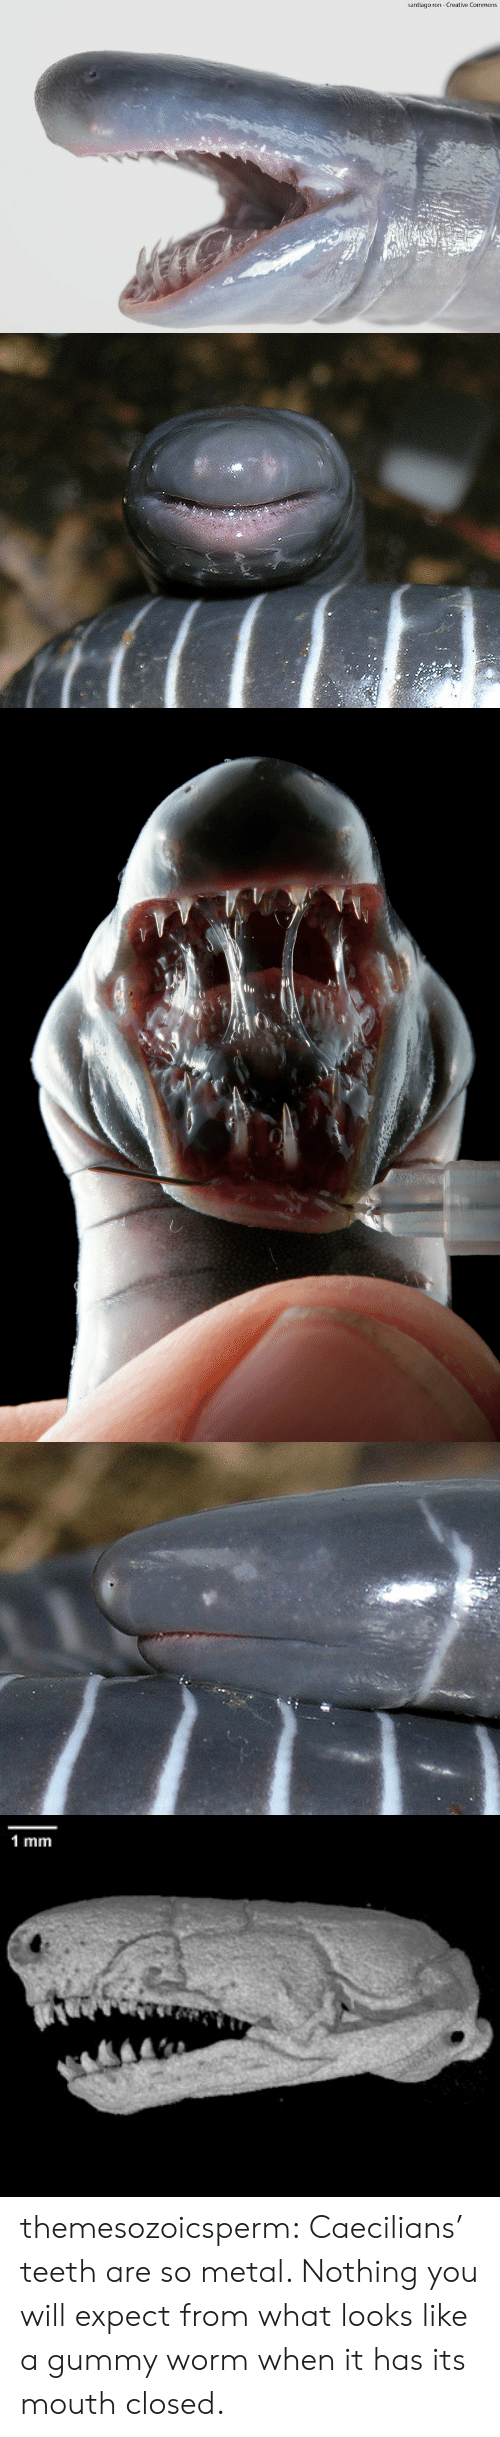 Target, Tumblr, and Blog: santiago ron- Creative Commons   1 mm themesozoicsperm:  Caecilians' teeth are so metal. Nothing you will expect from what looks like a gummy worm when it has its mouth closed.